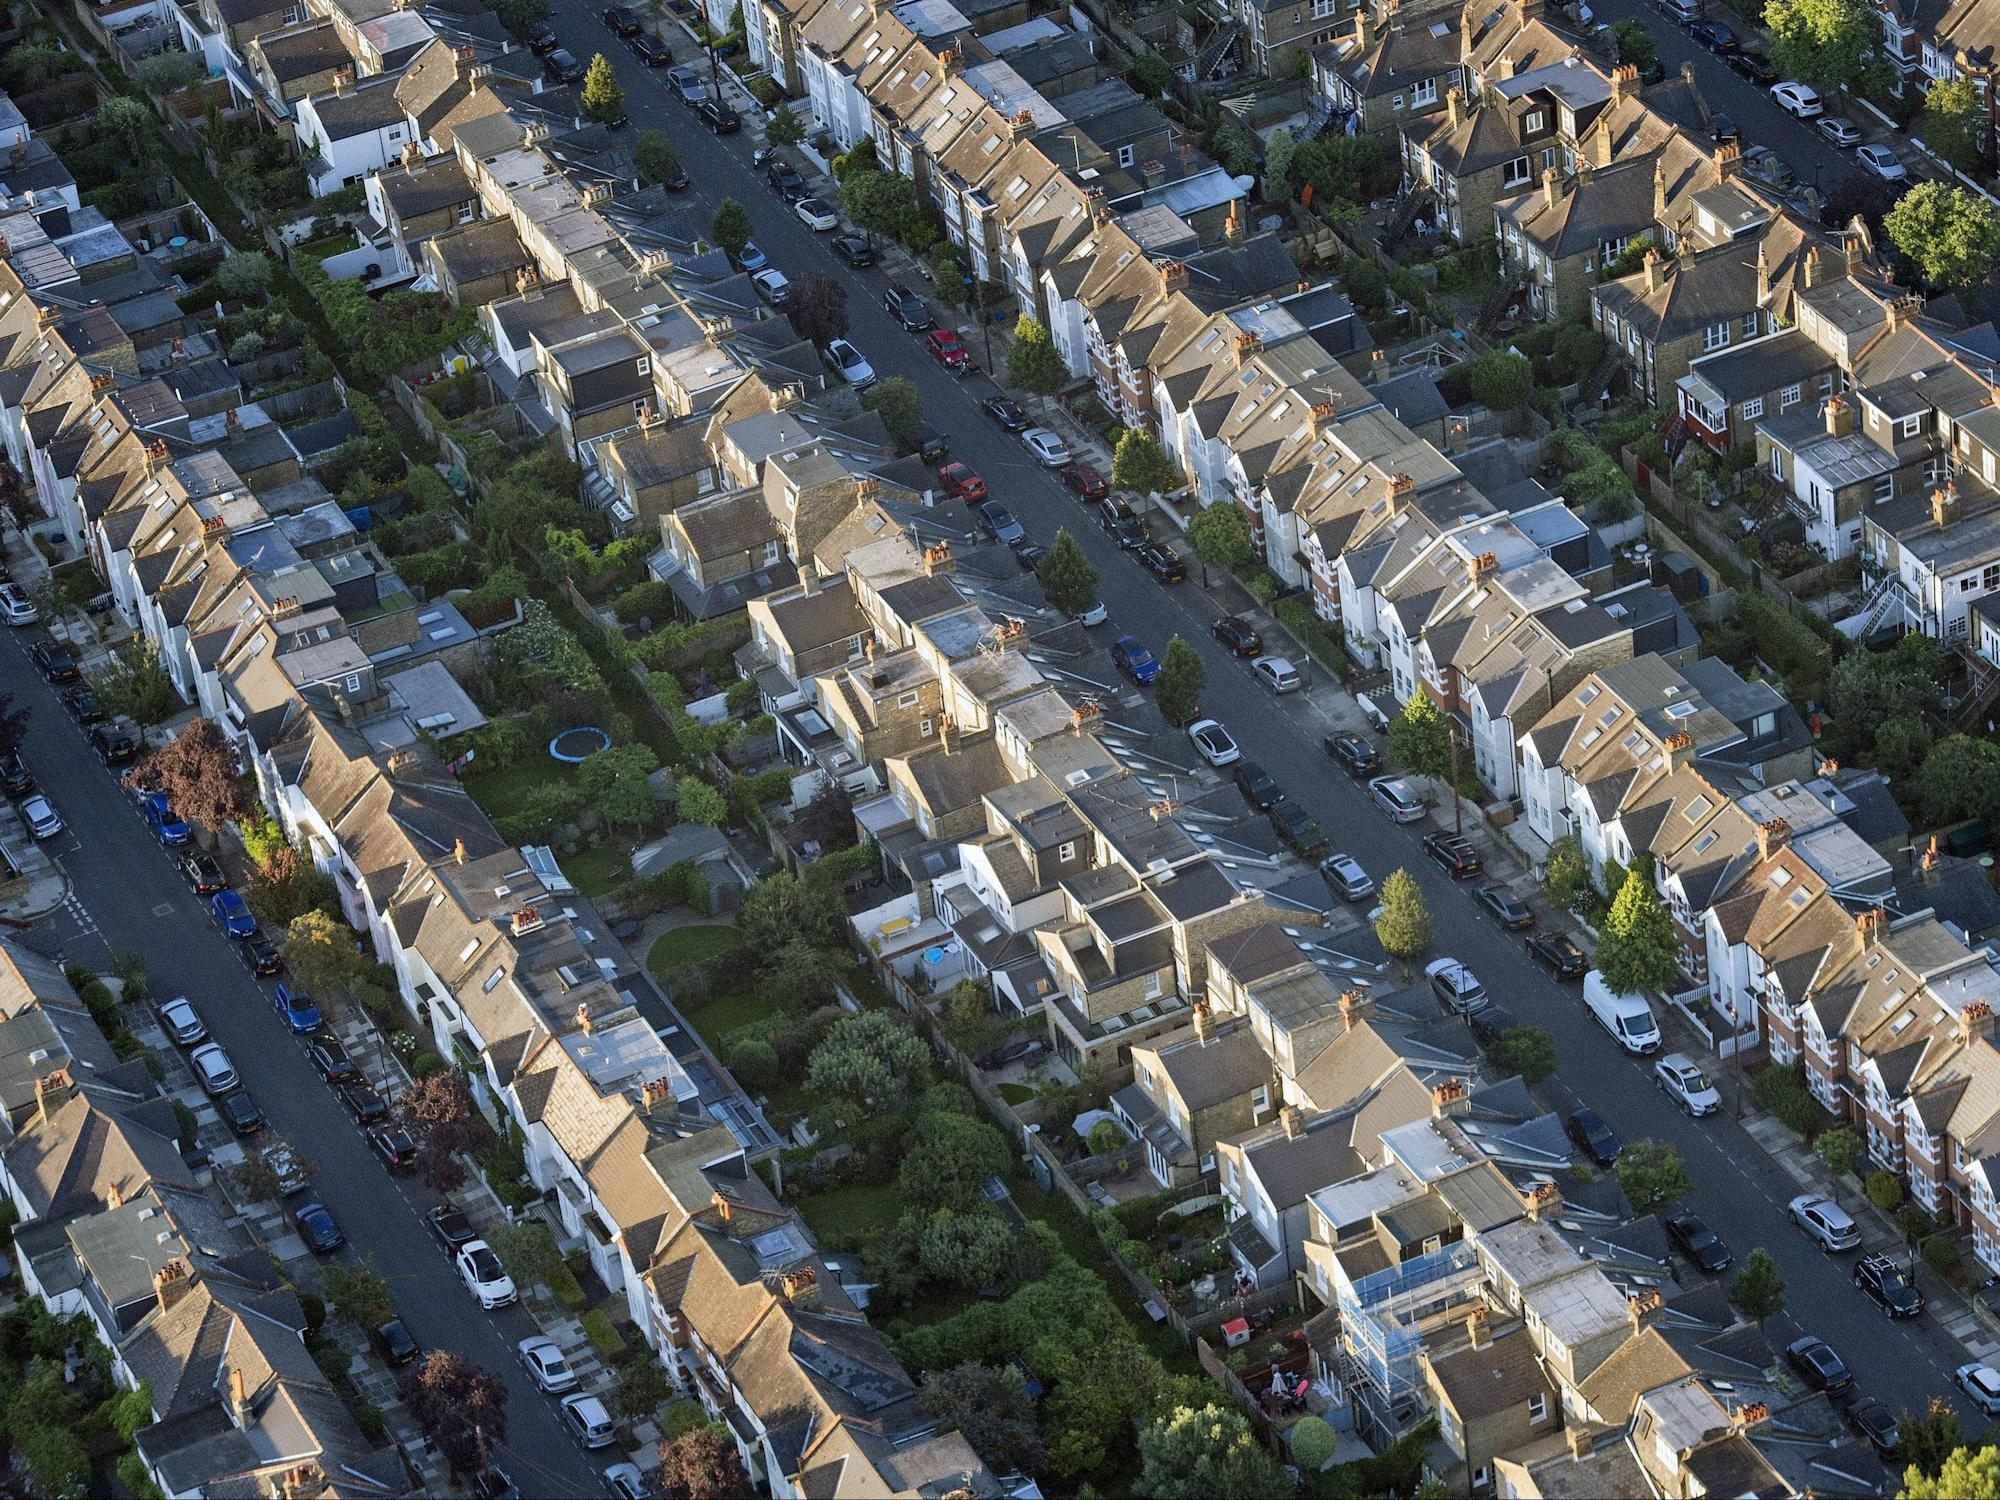 Millions worried about rent over winter as government urged to reinstate eviction ban